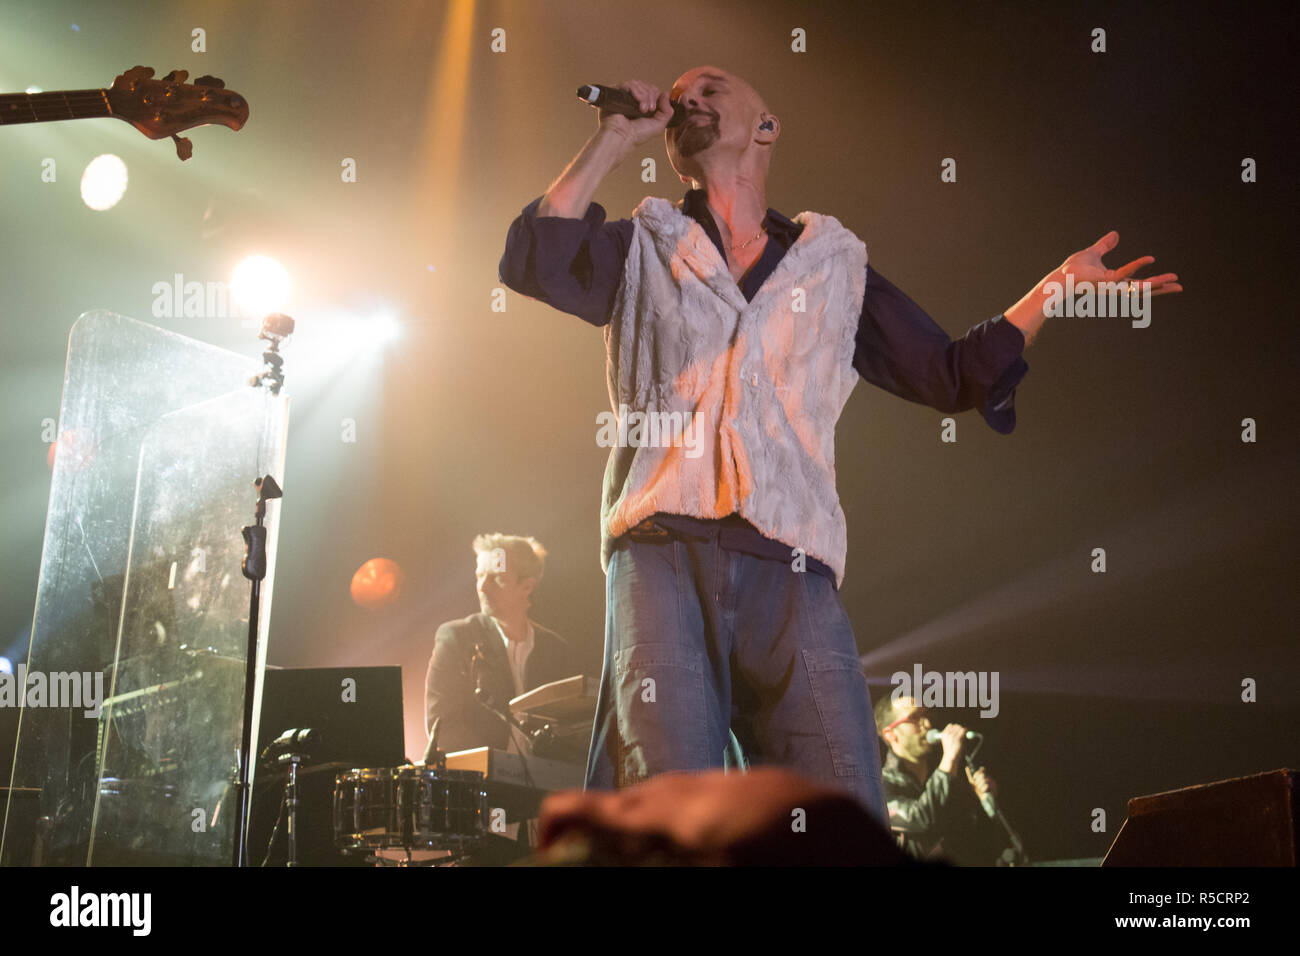 James live at Manchester Arena - Stock Image